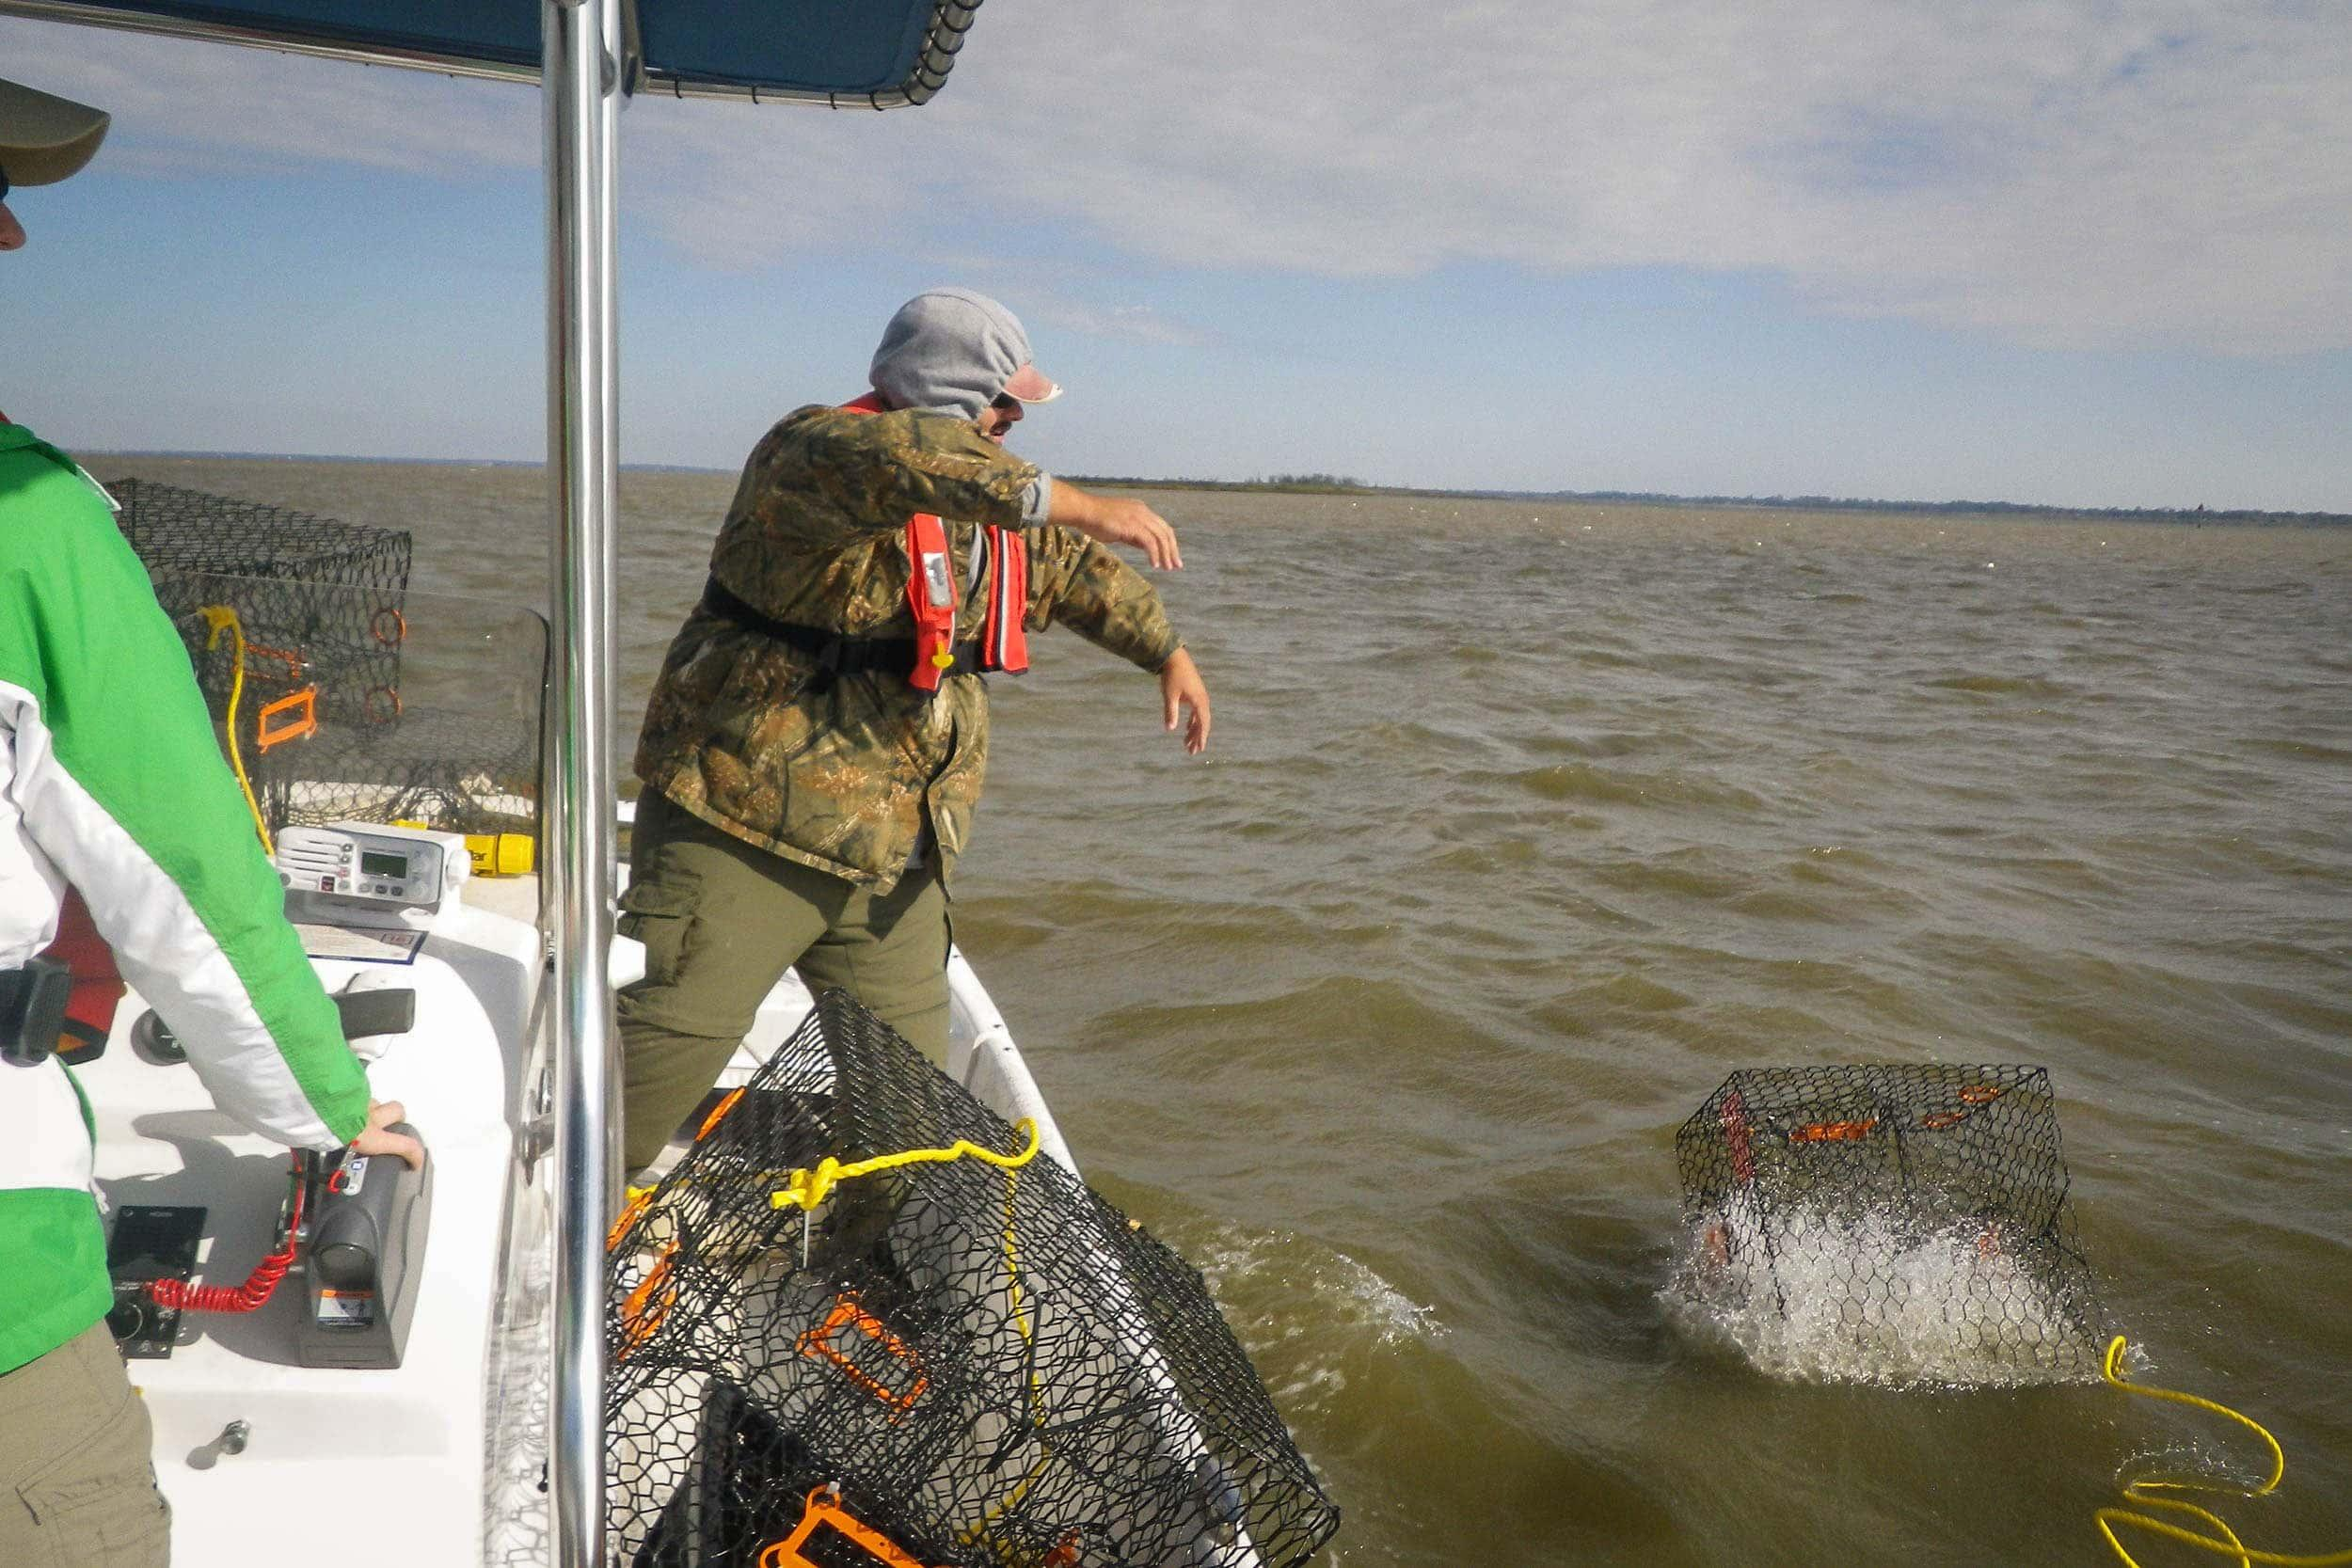 Bryan Alleman, EIH research assistant, deploys a deep water crab trap